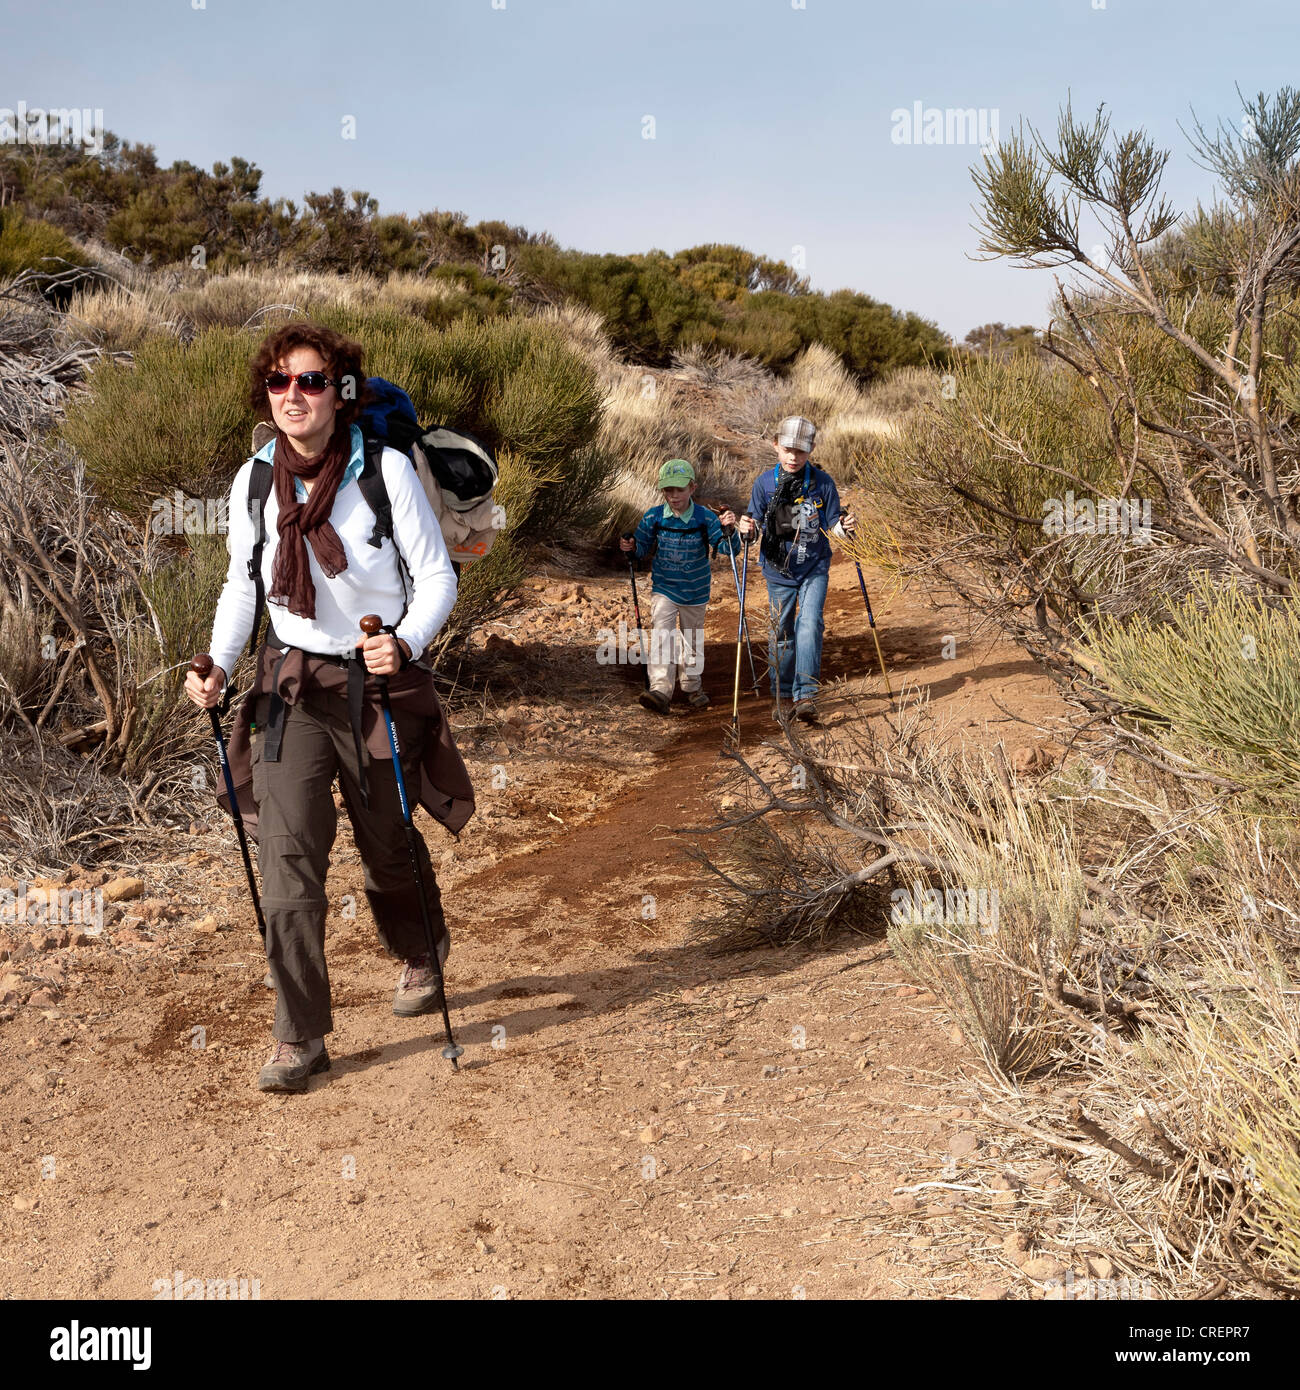 Mother hiking with her children, Teide National Park, Tenerife, Canary Islands, Spain, Europe - Stock Image